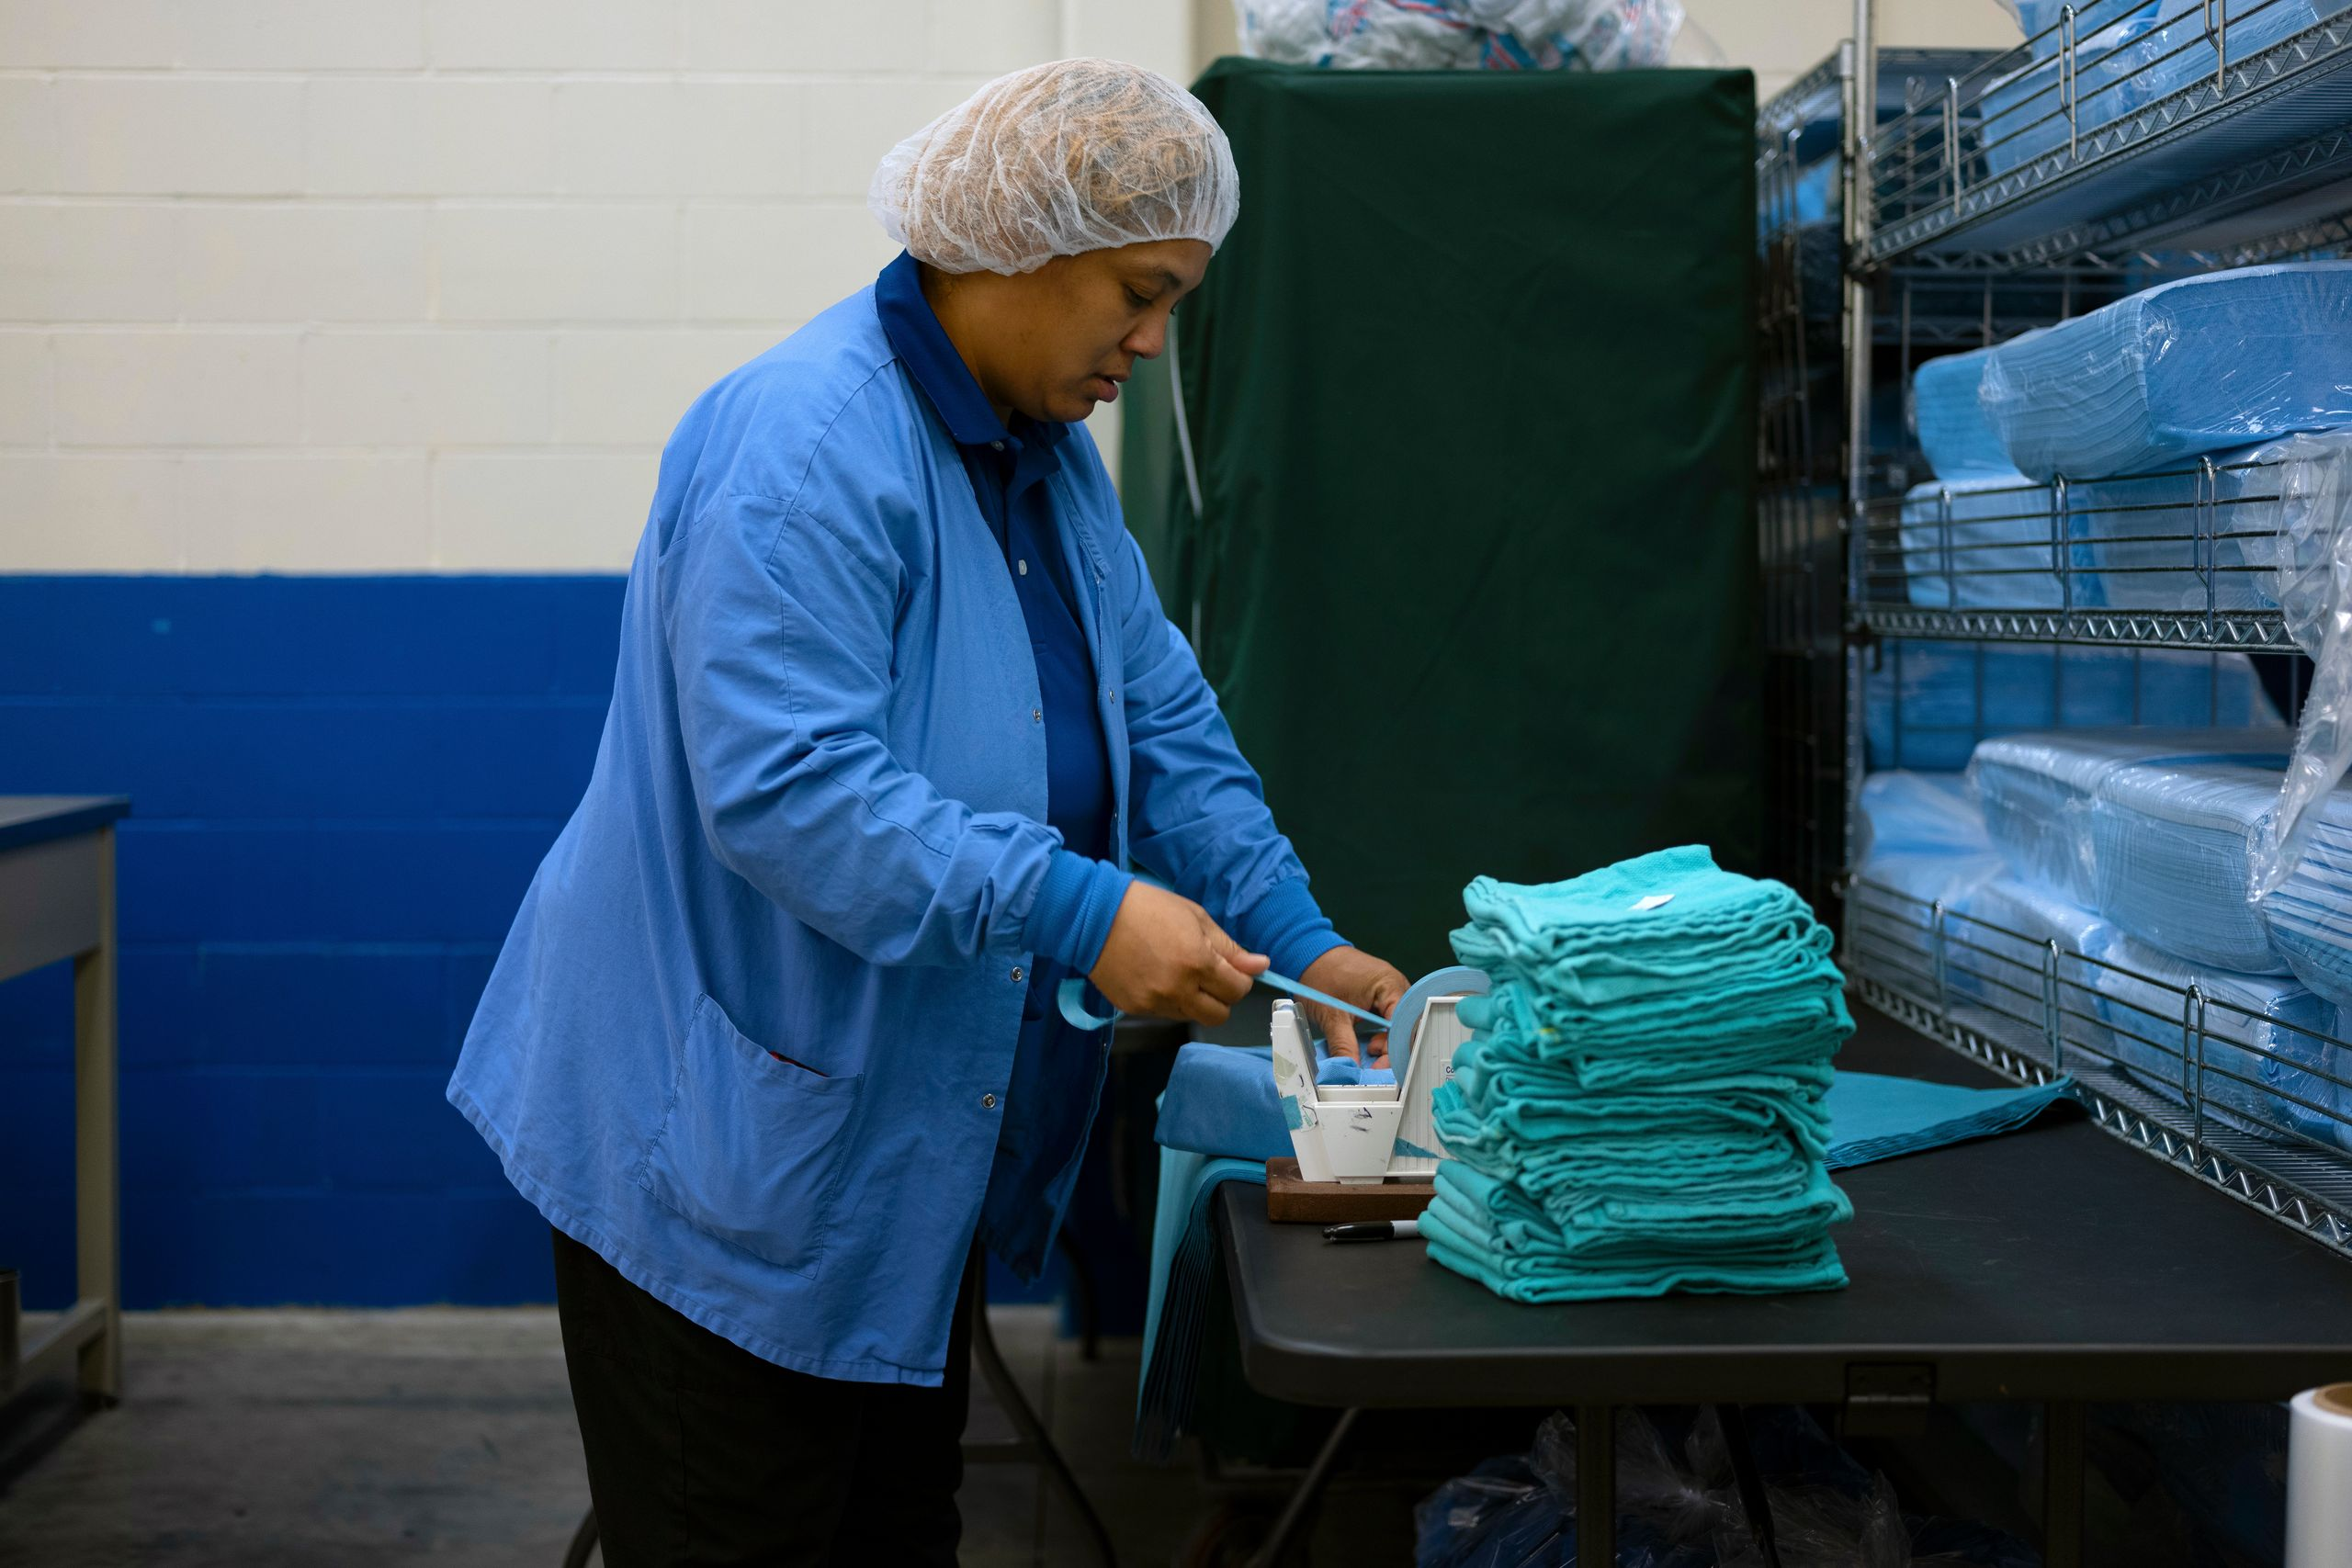 Tymika Thomas runs a crew that prepares packs of surgical linen for the Cleveland Clinic, the world-renowned hospital ne